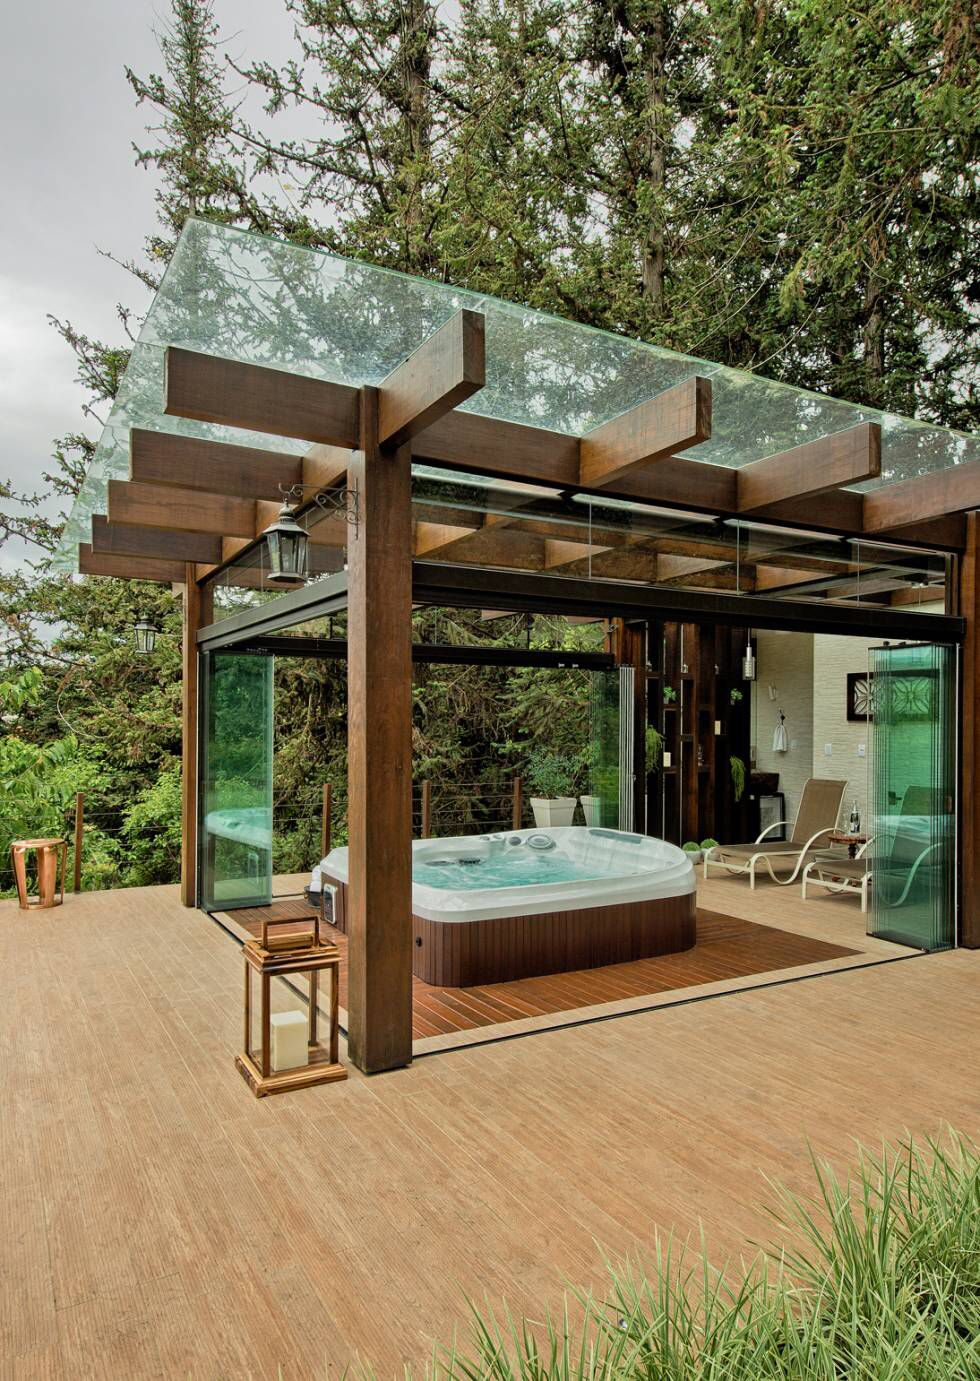 Hot Tub Pergola: Clearly see the stars on bright nights ...